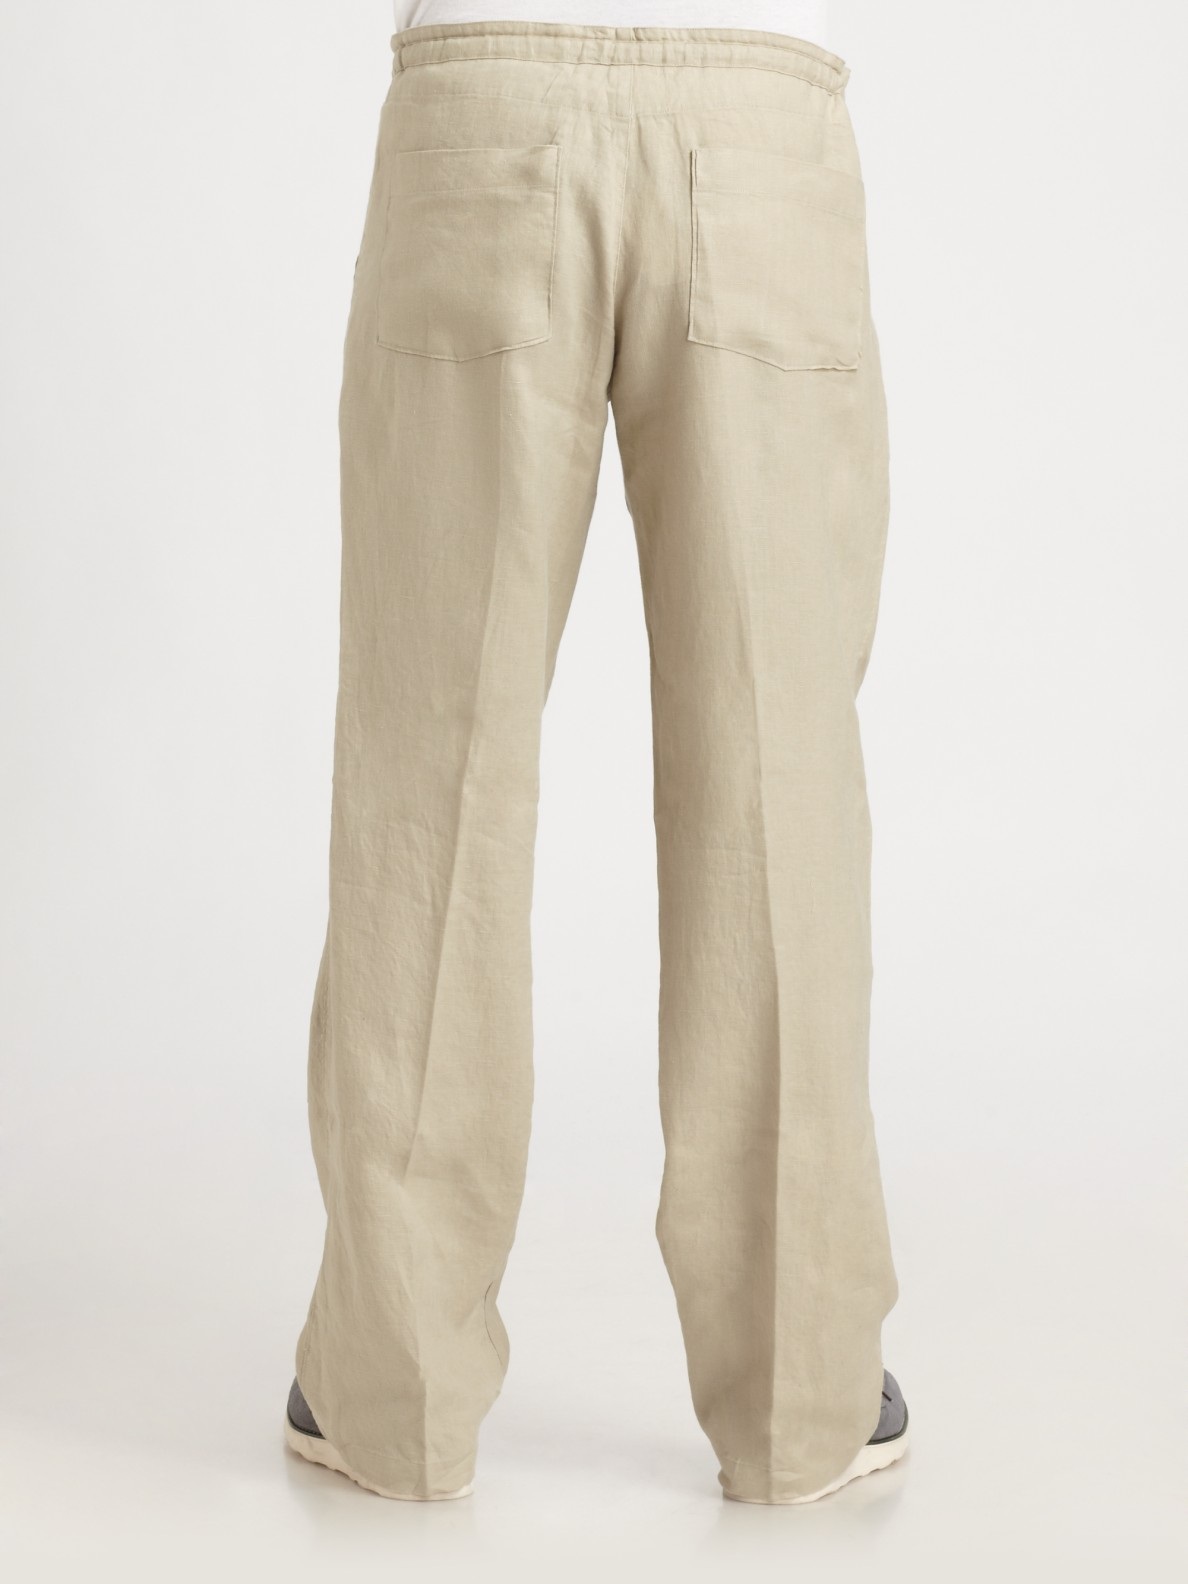 Saks Fifth Avenue Linen Drawstring Pants In Oyster